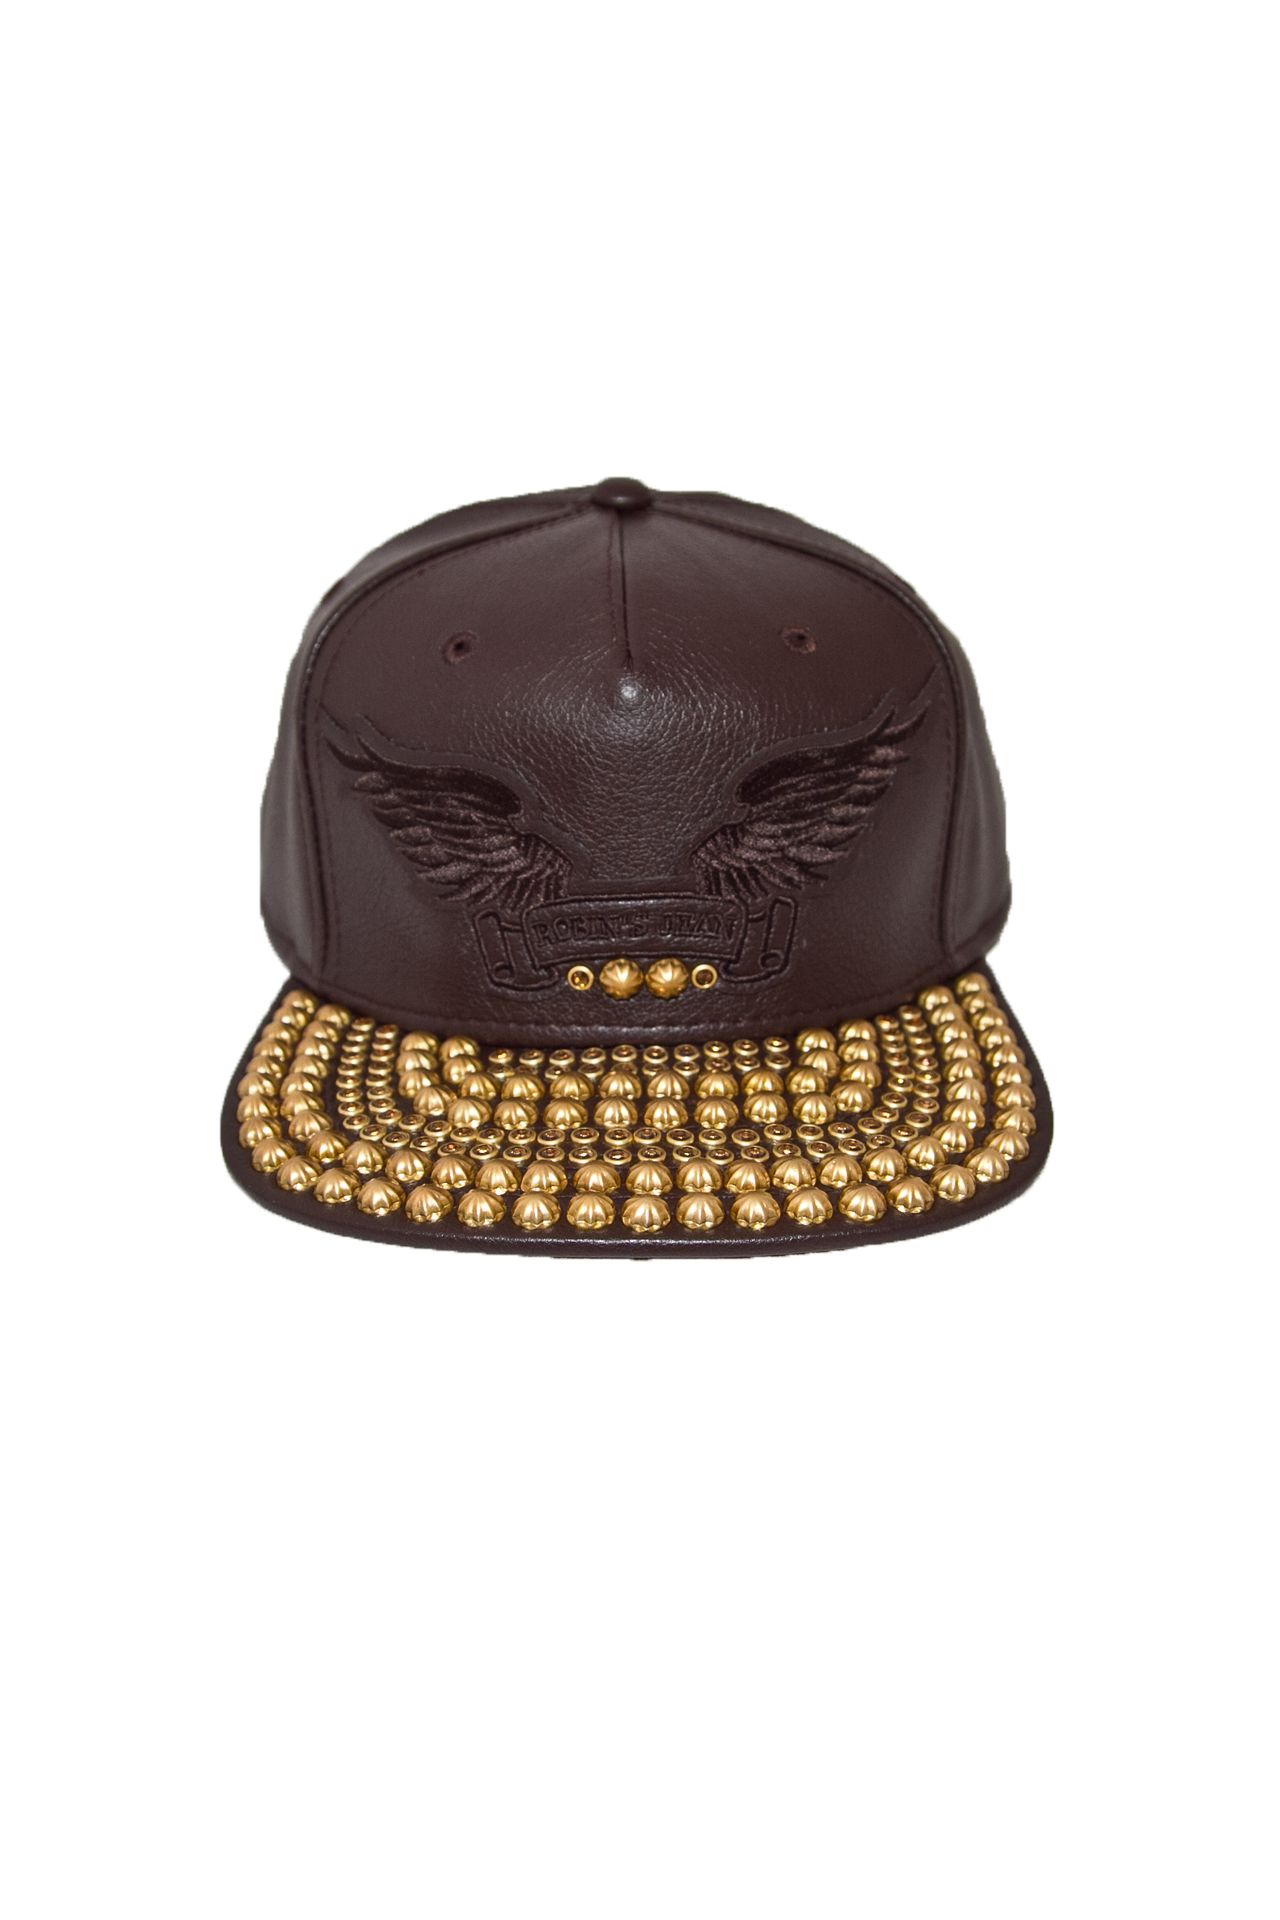 BROWN LEATHER LOOK CAP STUDS AND CRYSTALS